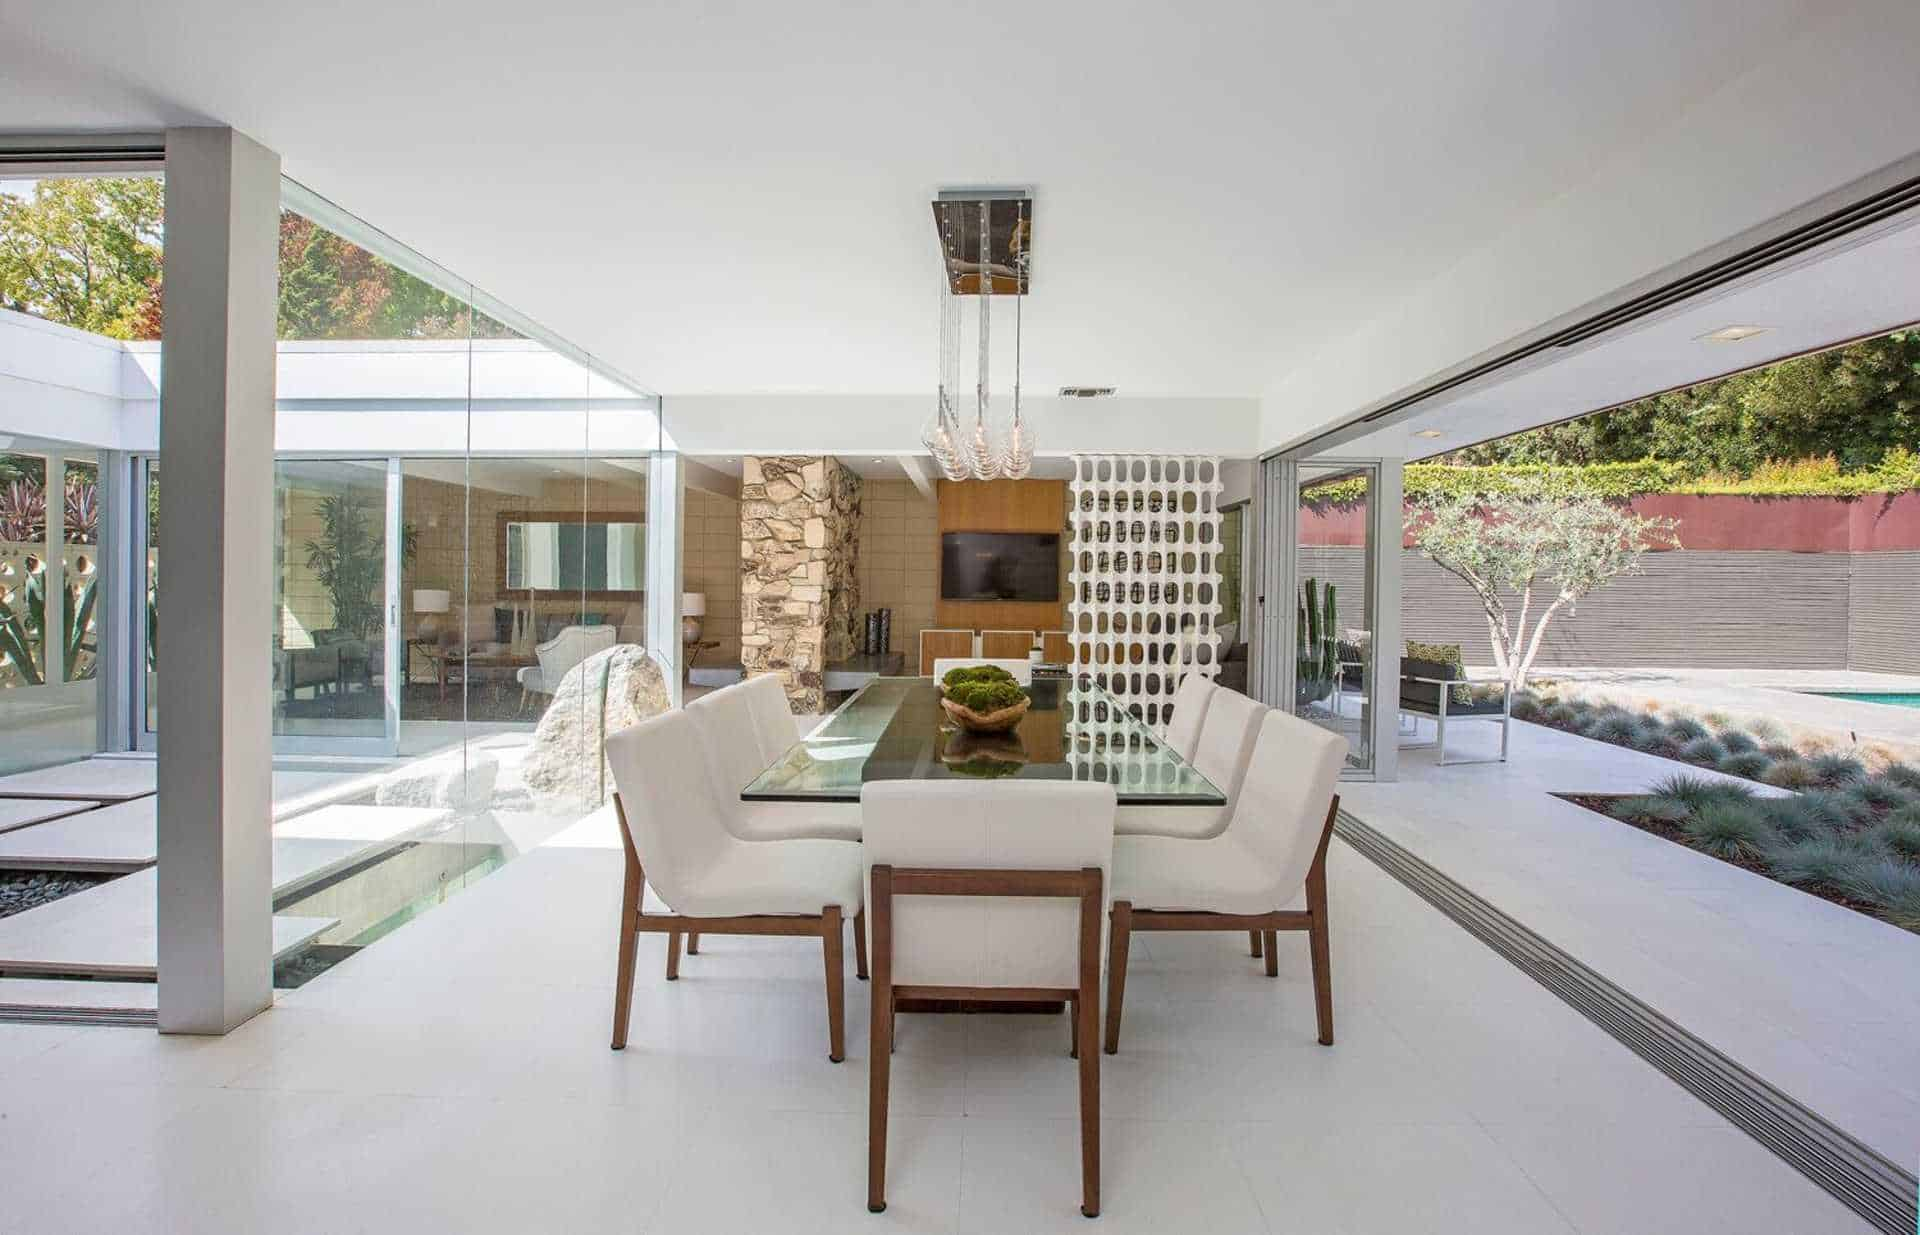 The dining room offers a glass table with modern seats surrounded by glass sliding door and walls.